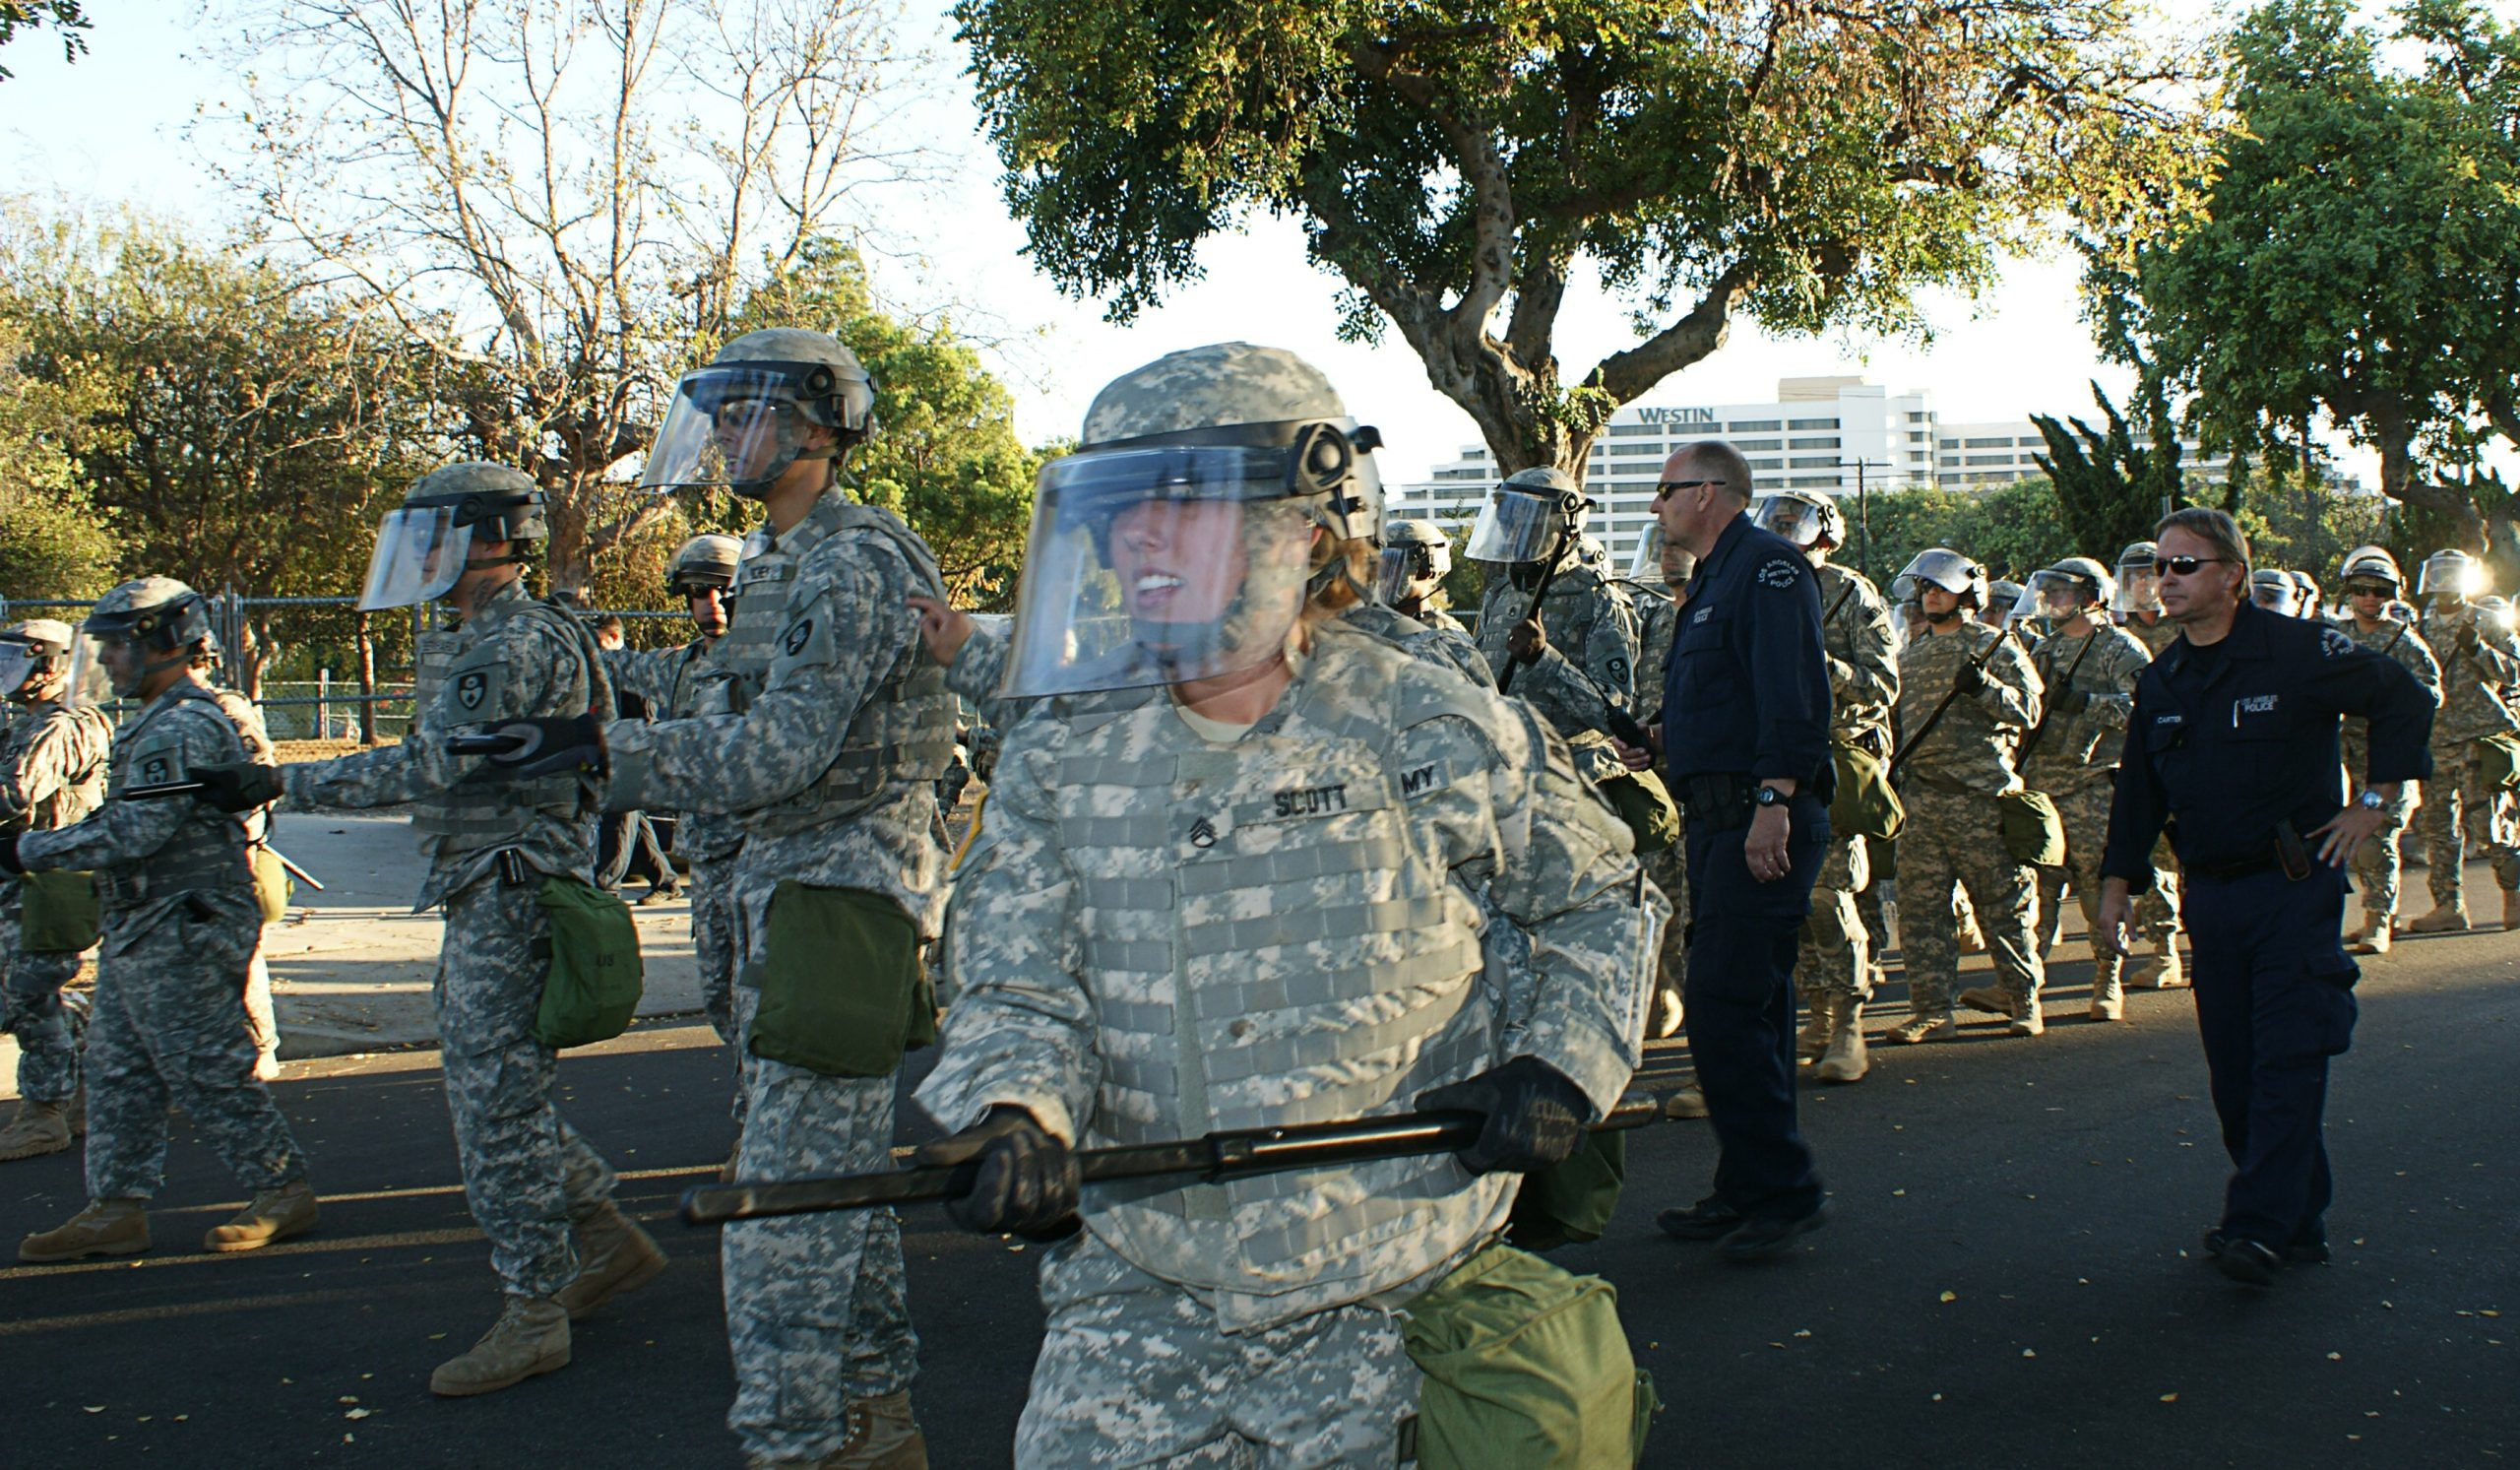 The LAPD National Guard in training